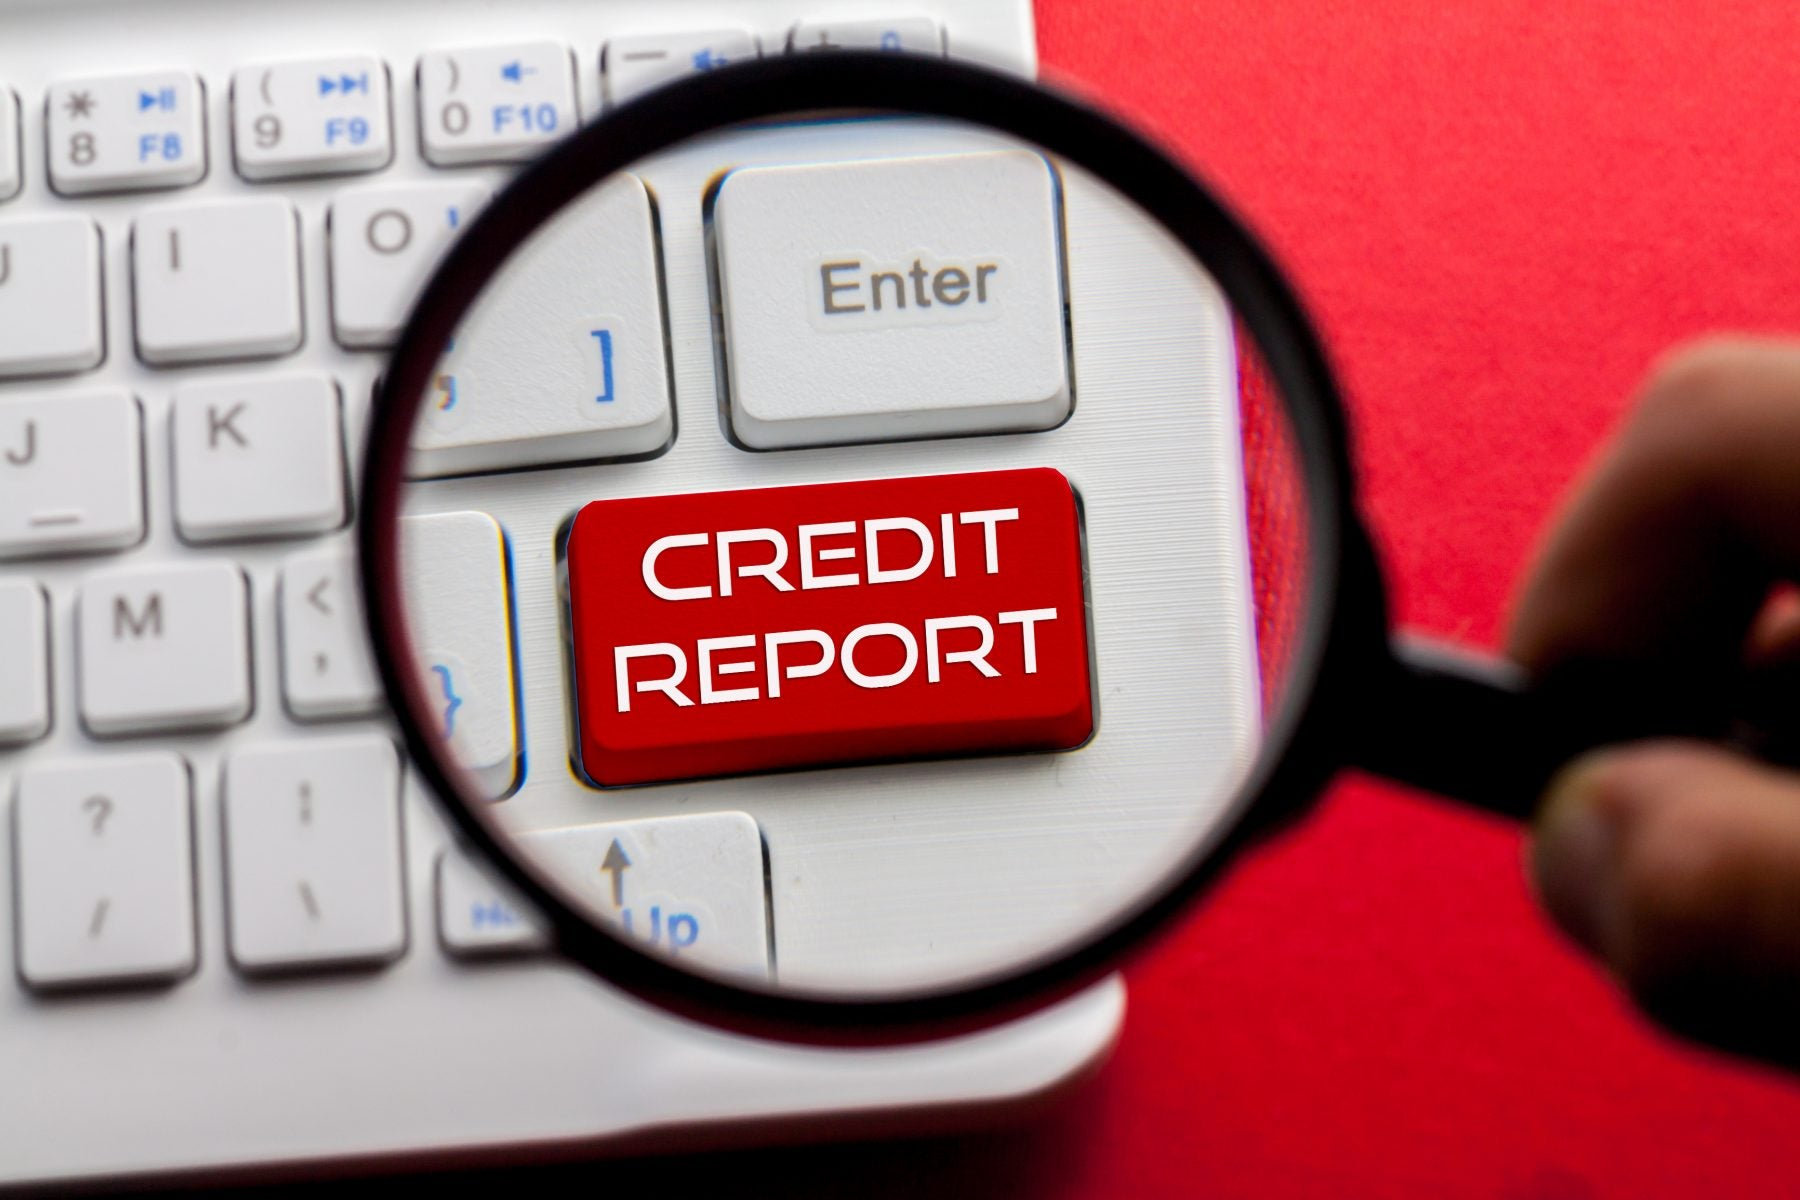 How to check your business credit report